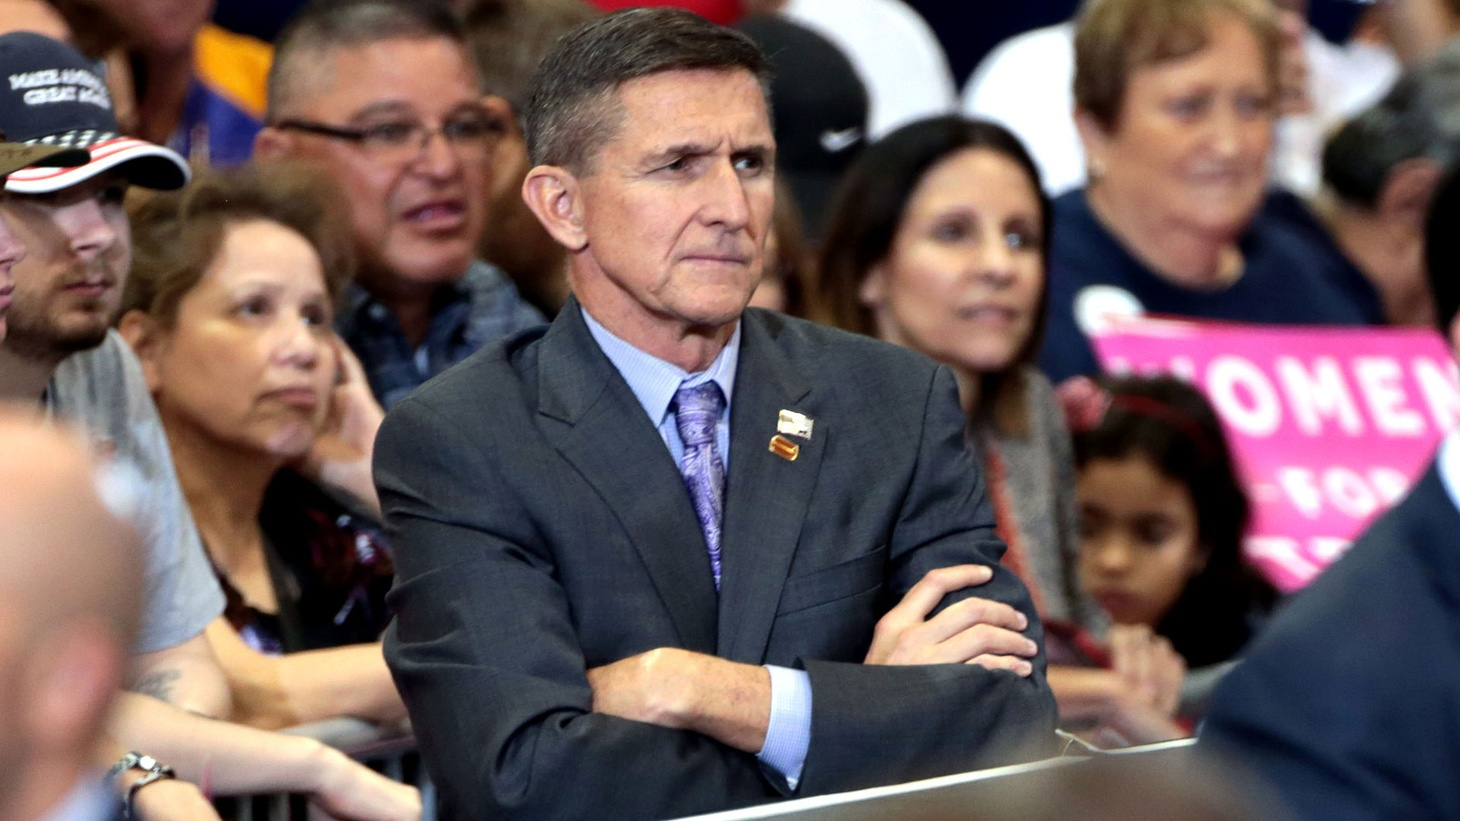 Former National Security Advisor Michael Flynn asked for immunity in exchange for his testimony. Does that mean -- as he said of others in the past -- that he must be guilty of something? We also look into the complicated ties between Russia and Donald Trump's associates.